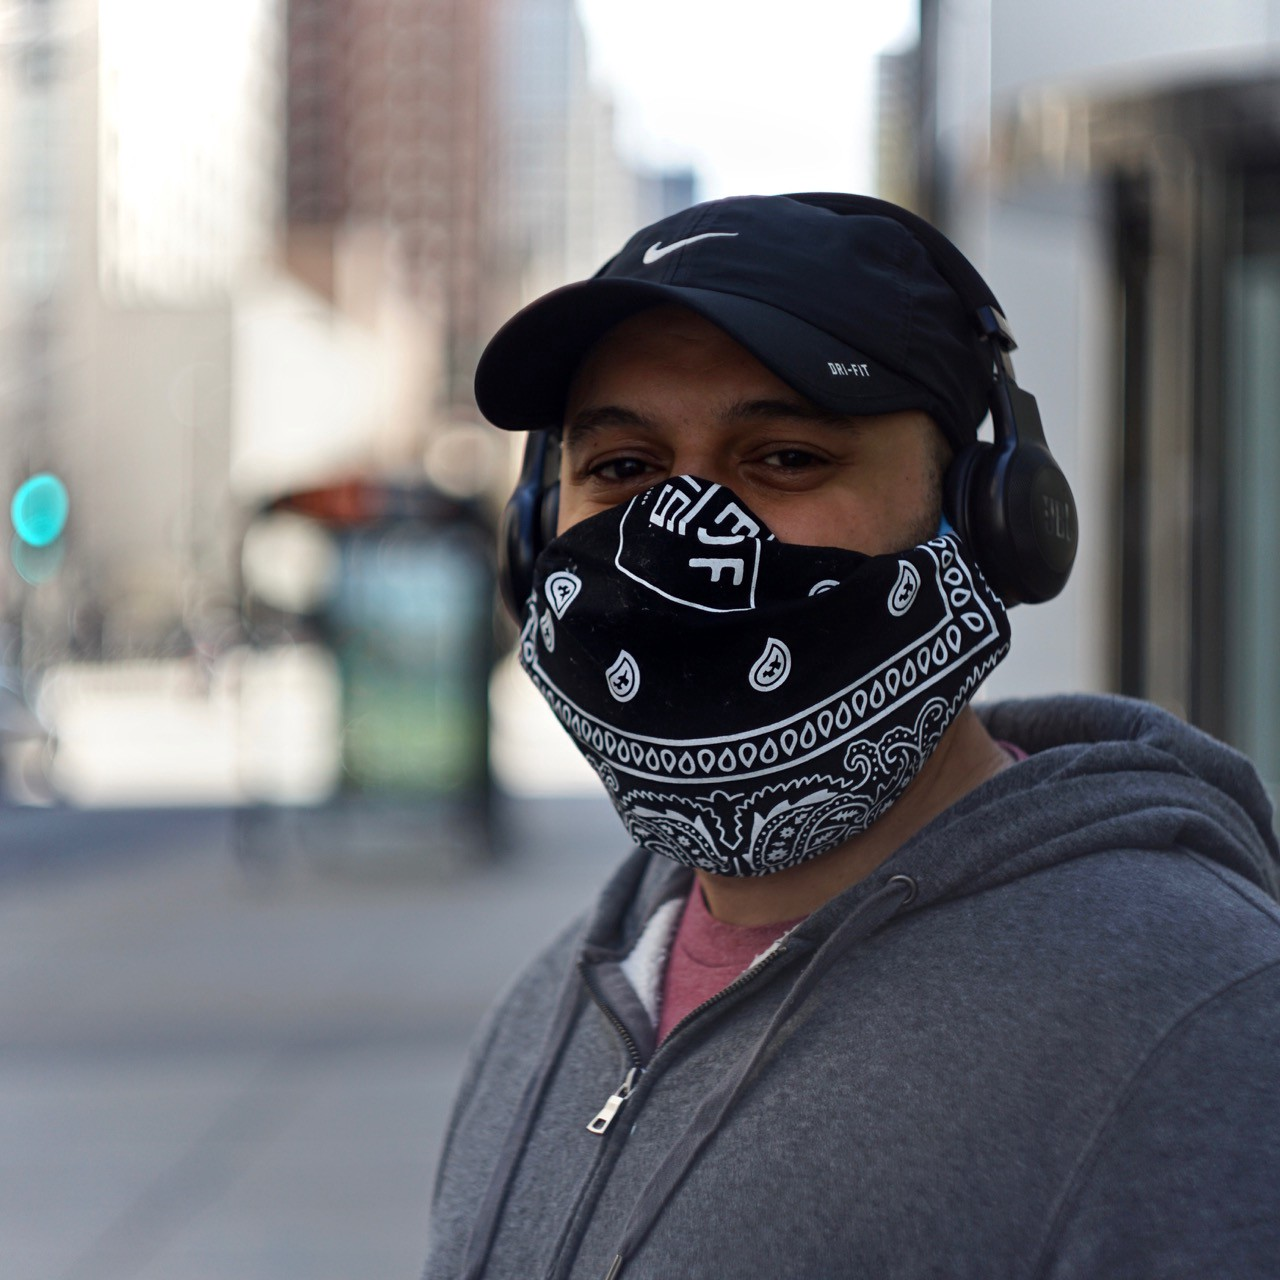 A young man with a hat, headphones, and a black and white mask pauses in downtown Chicago.